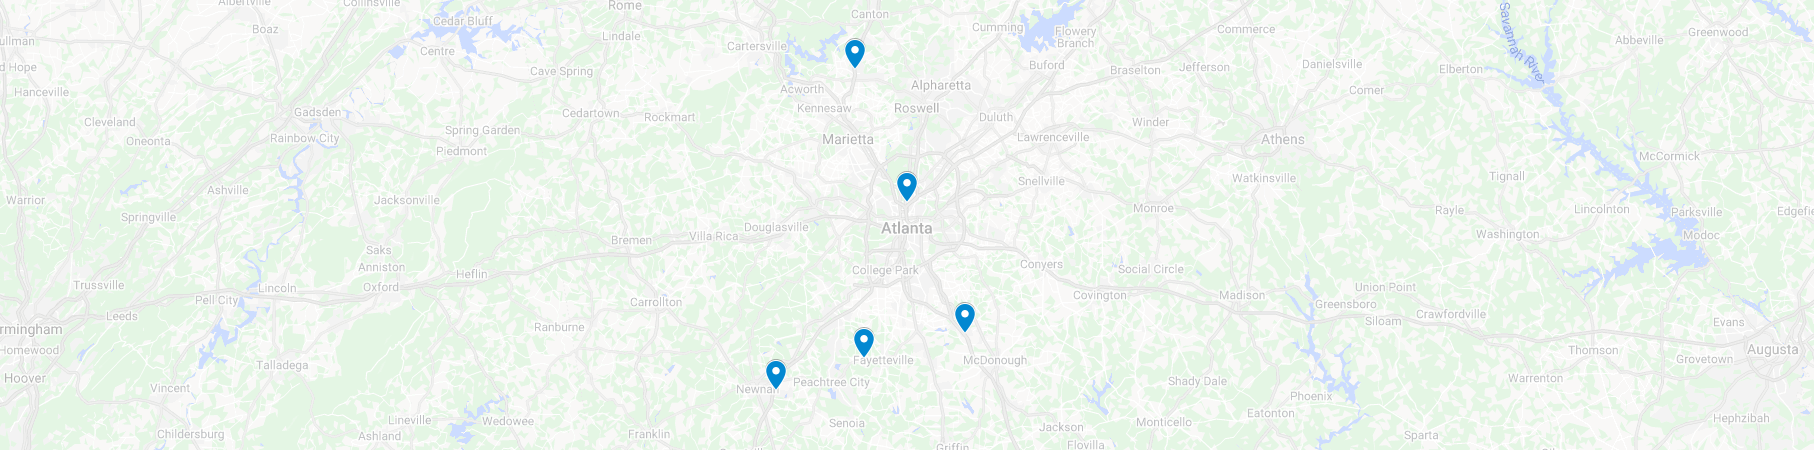 map of our atlanta brain and spince care locations